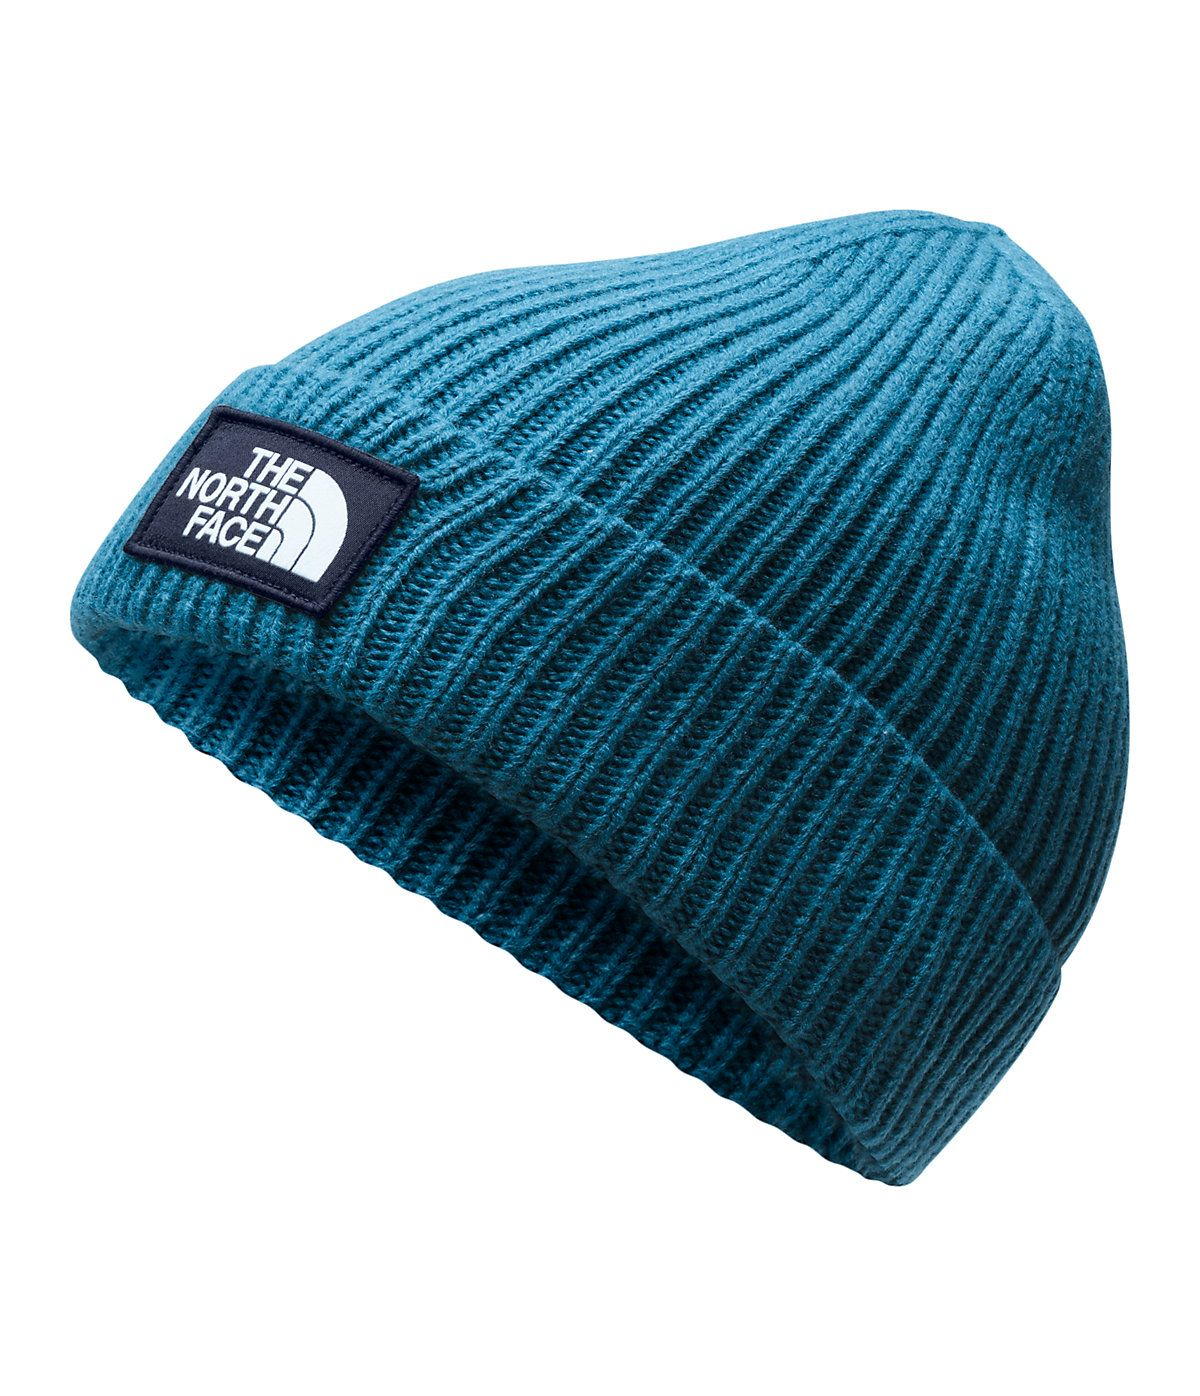 ec54c0e8c The North Face TNF Logo Box Cuffed Beanie Hat in 2019 | Products ...